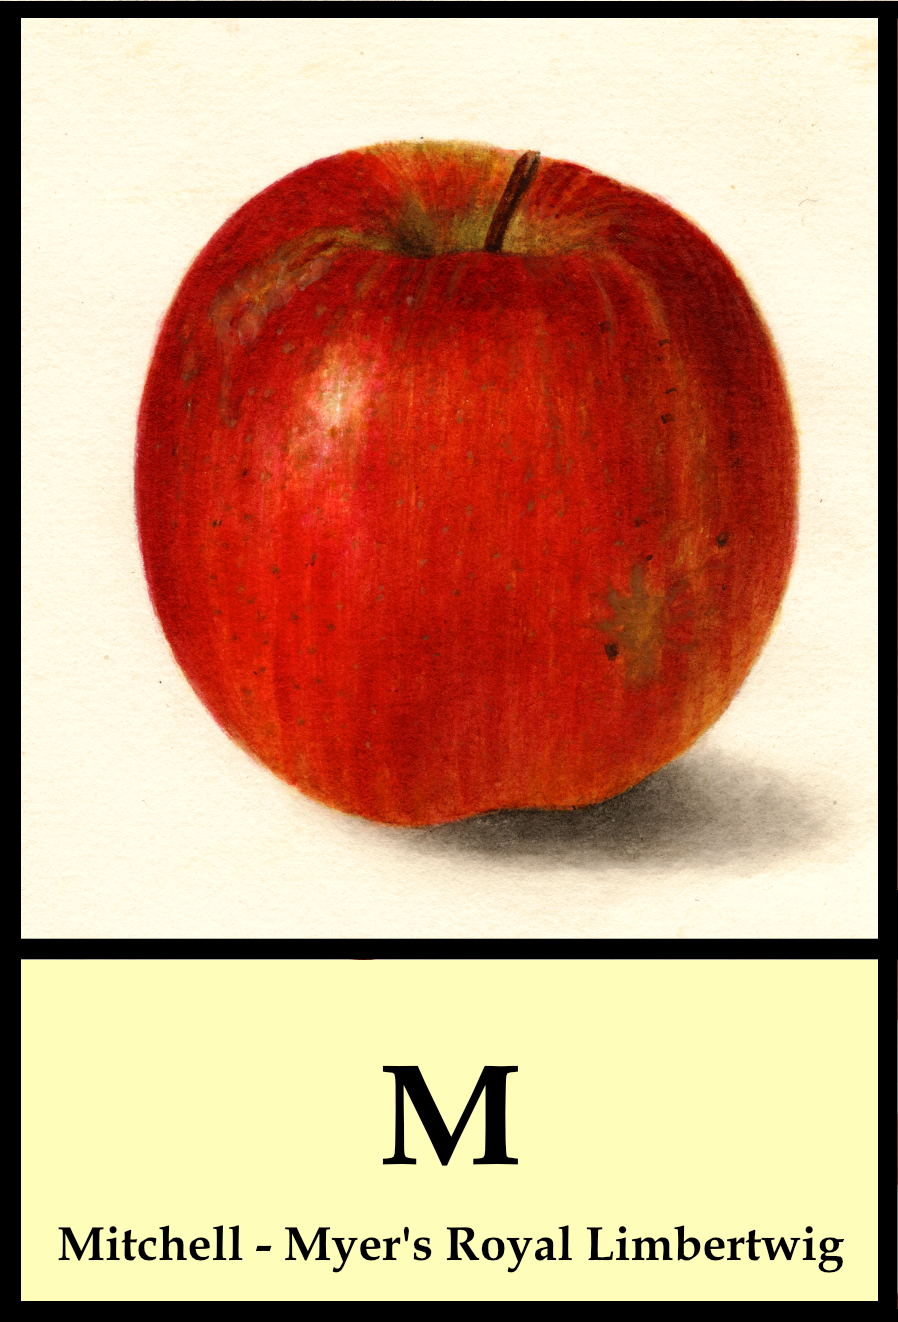 M apples - Mitchell to Myer's Royal Limbertwig